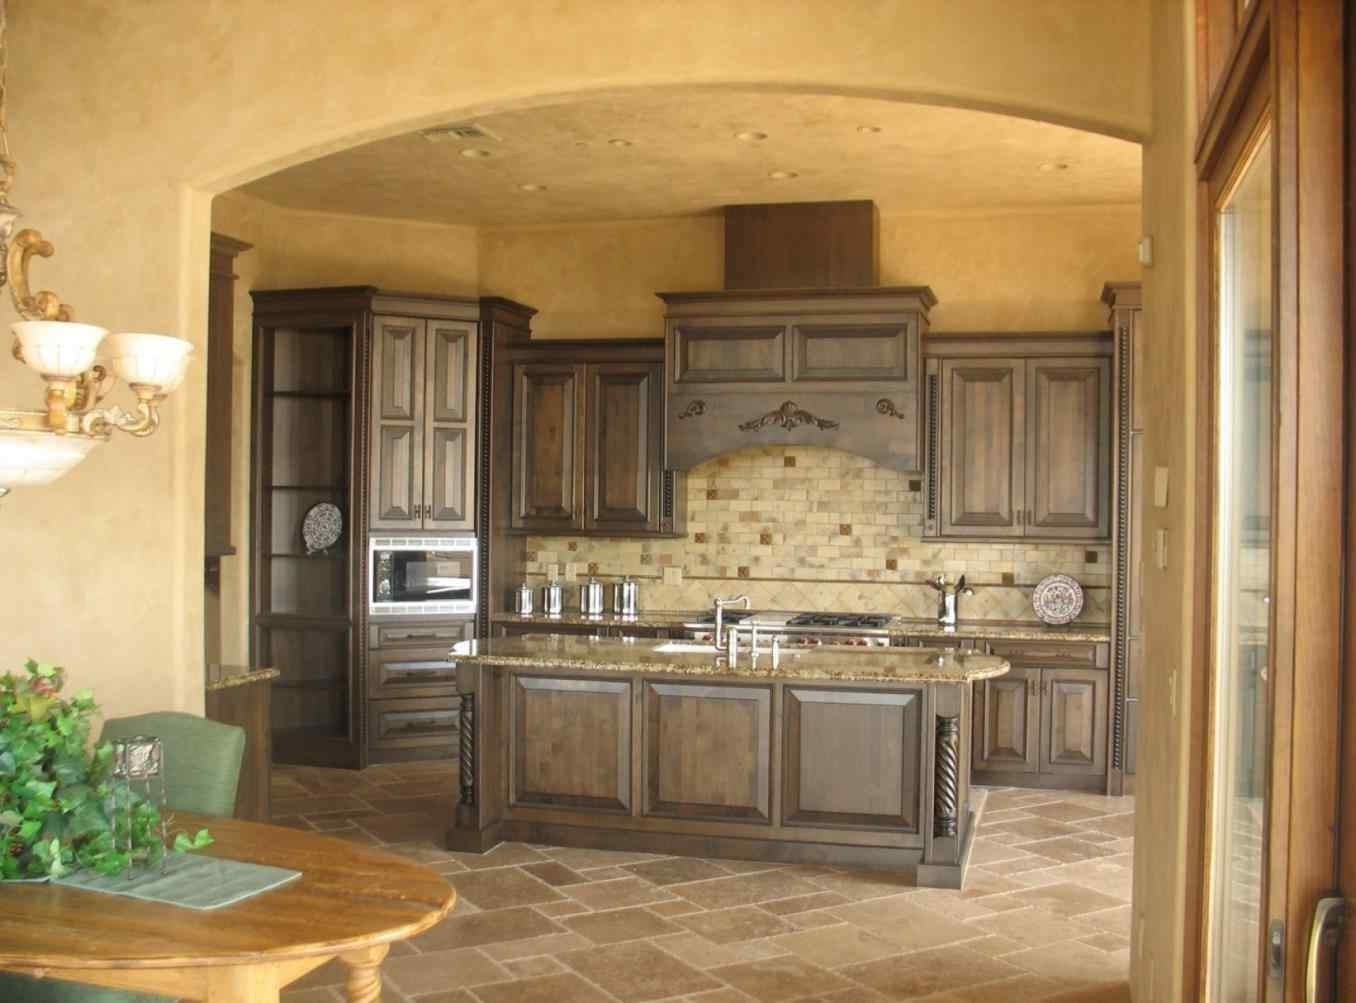 Tuscan Decor On A Budget Luxury Tuscan Kitchen Design On A Bud Kitchen Design